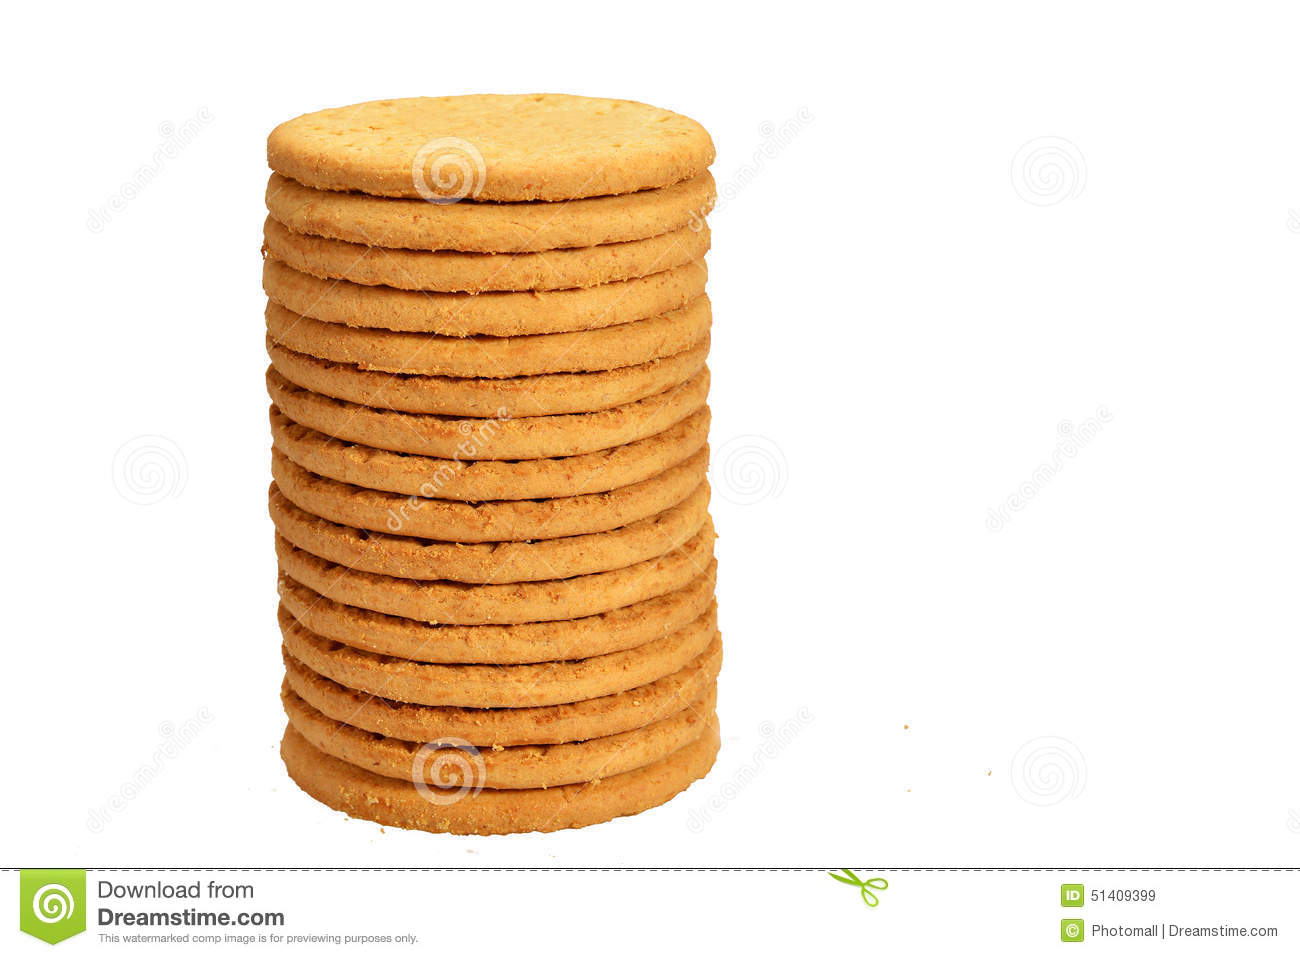 How Many Calories In A Chocolate Biscuit